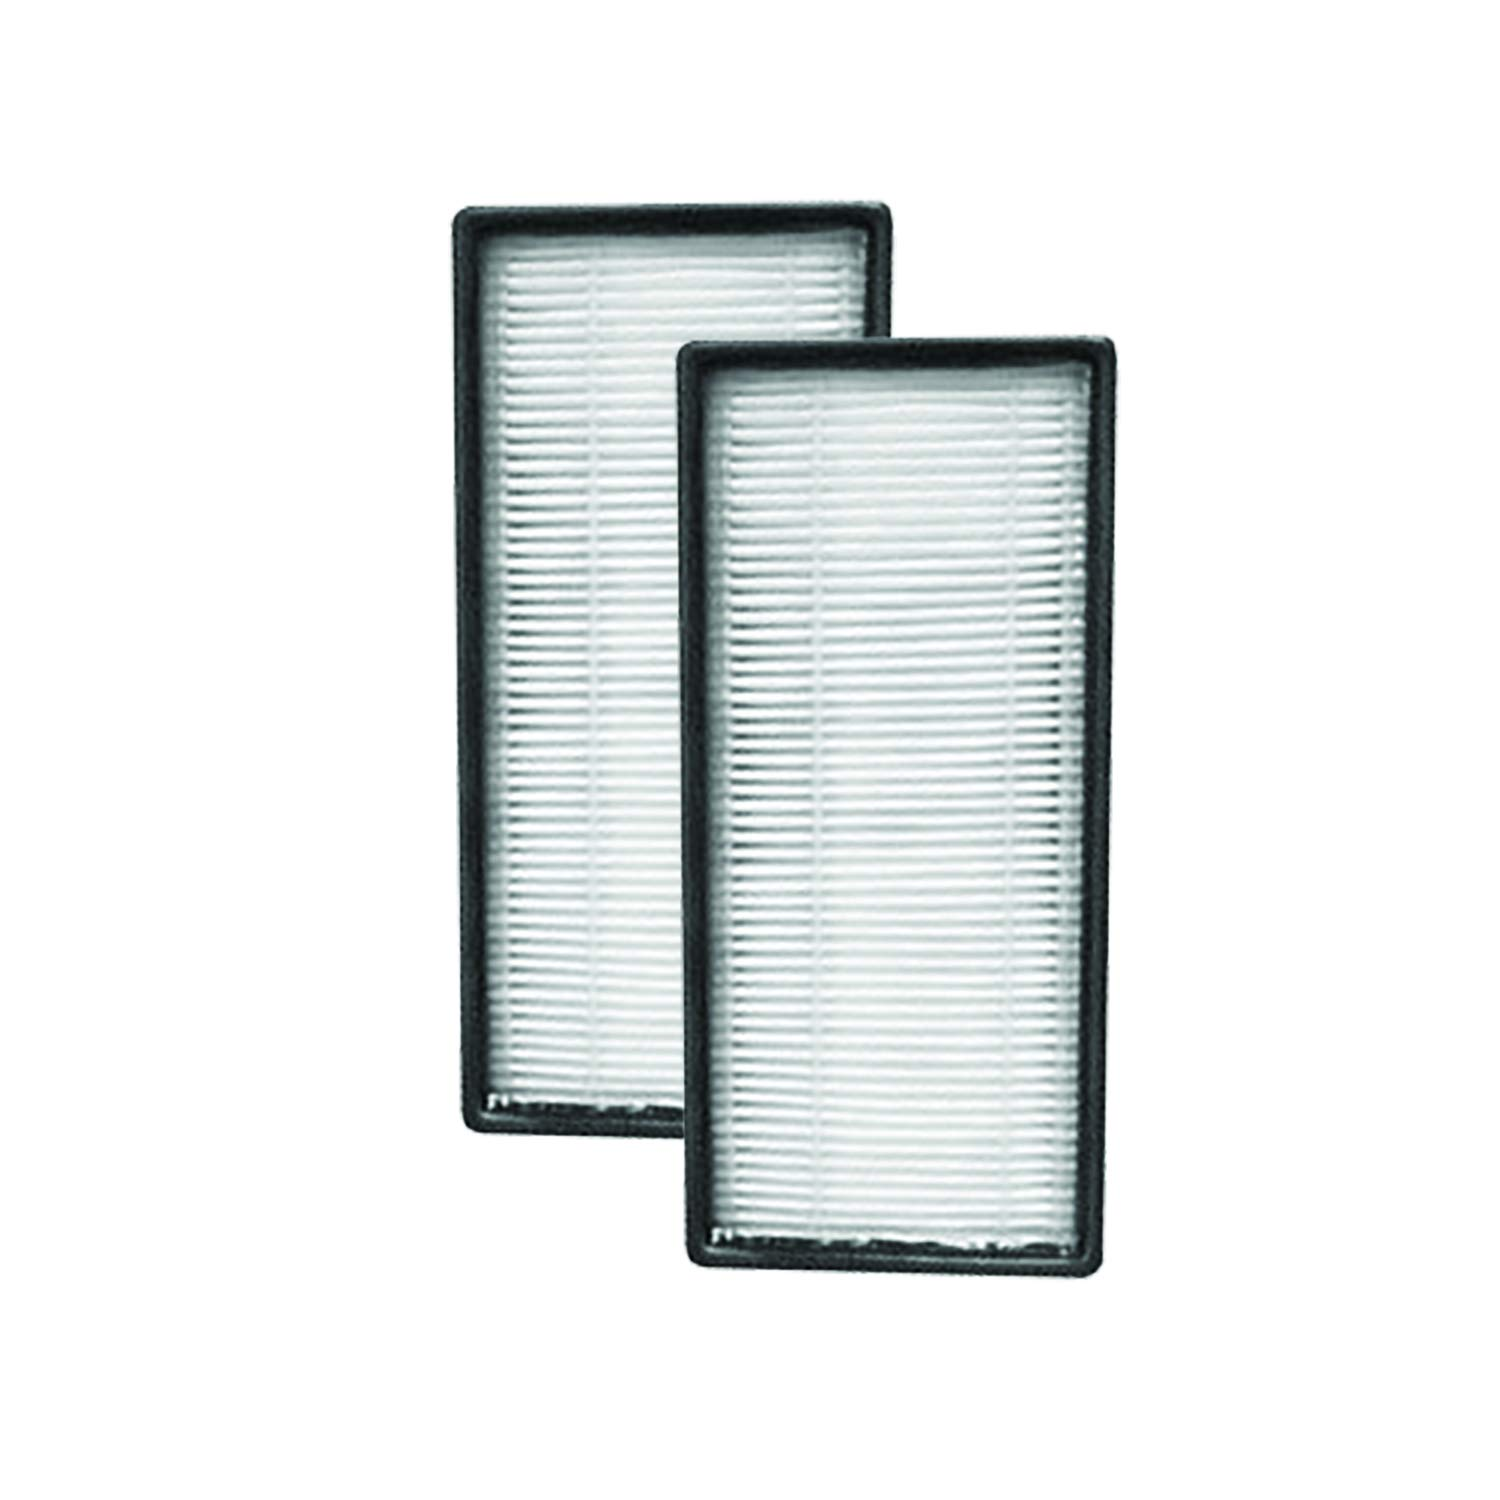 Replacement for Honeywell HEPAclean C Filter (2pk)